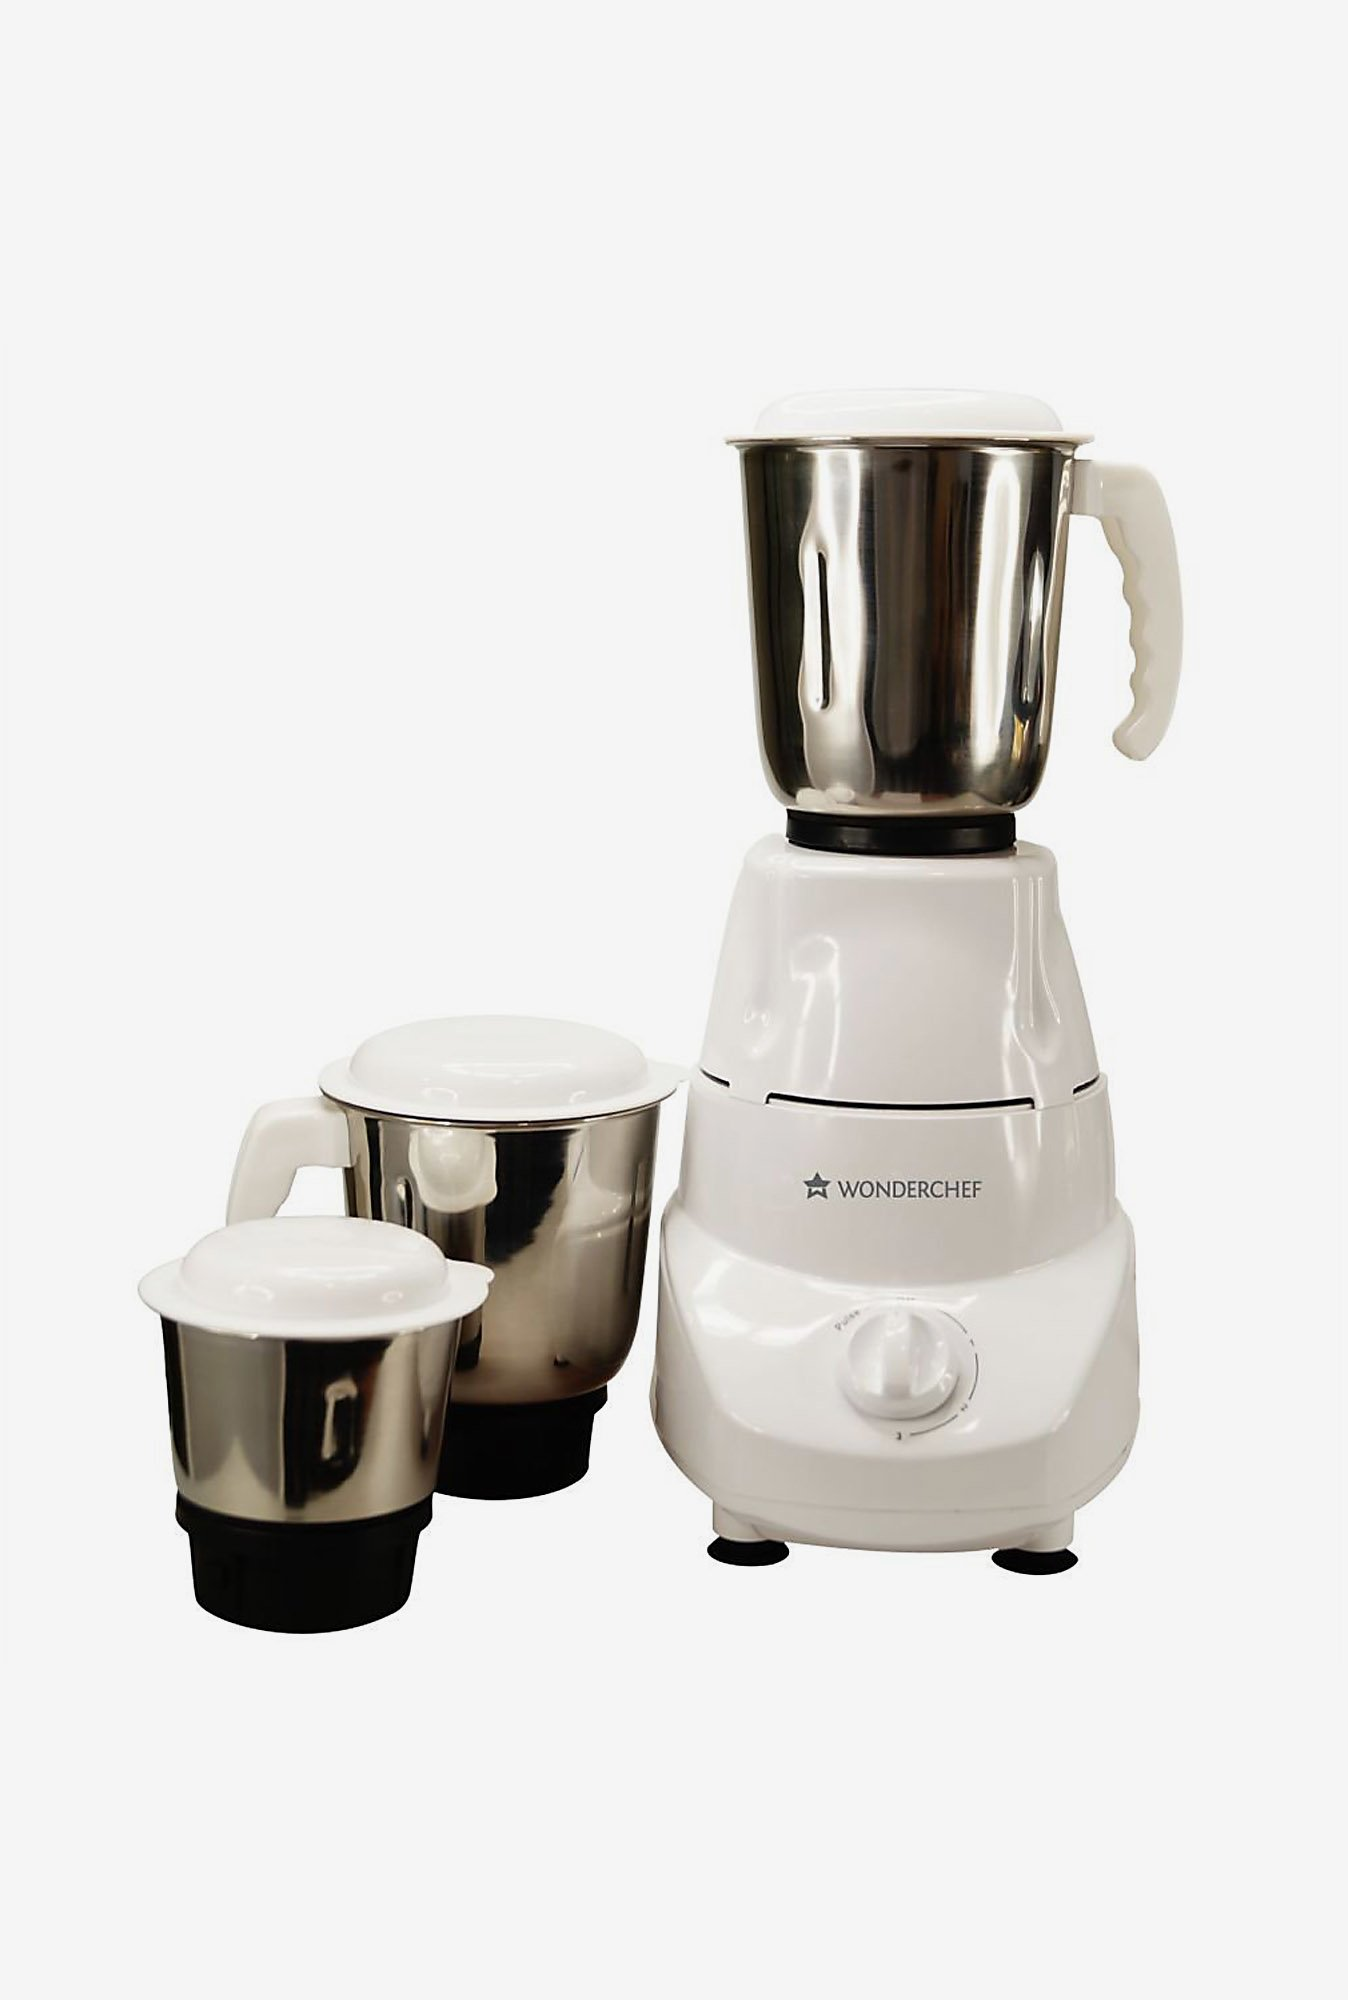 Wonderchef Prato 500 W 3 Jar Mixer Grinder ( White)